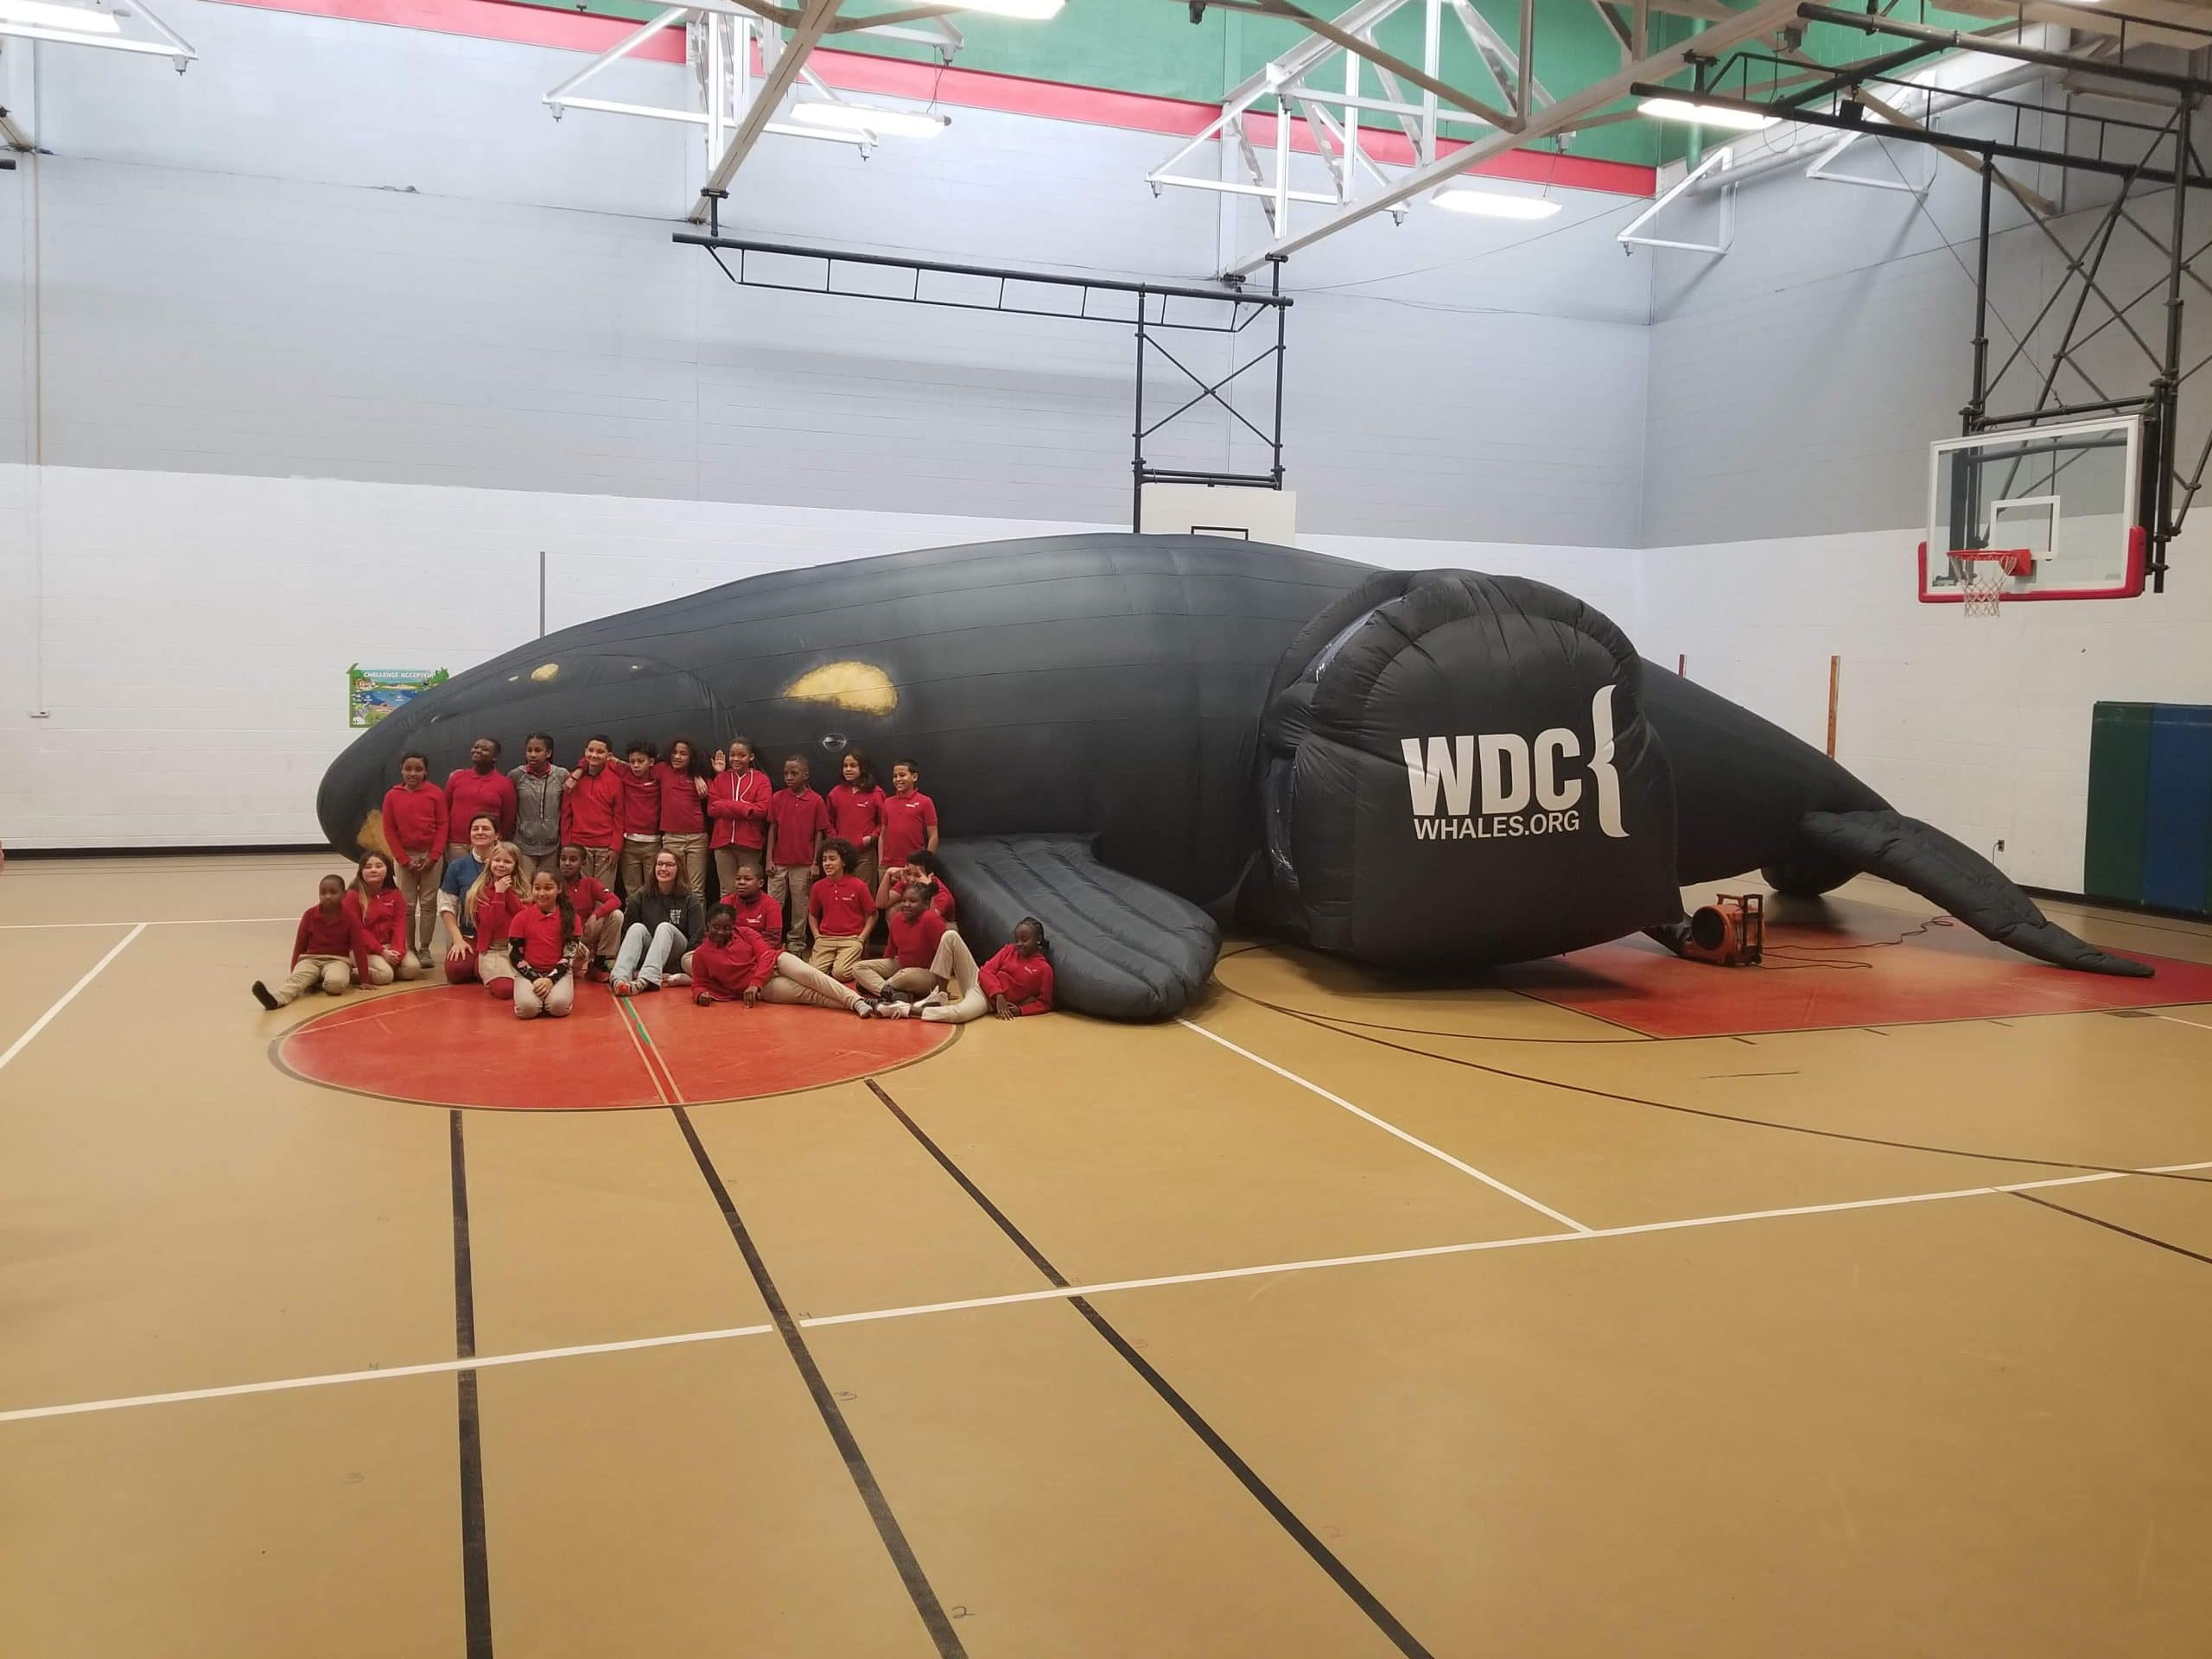 Life sized inflatable whale wih students sitting in front